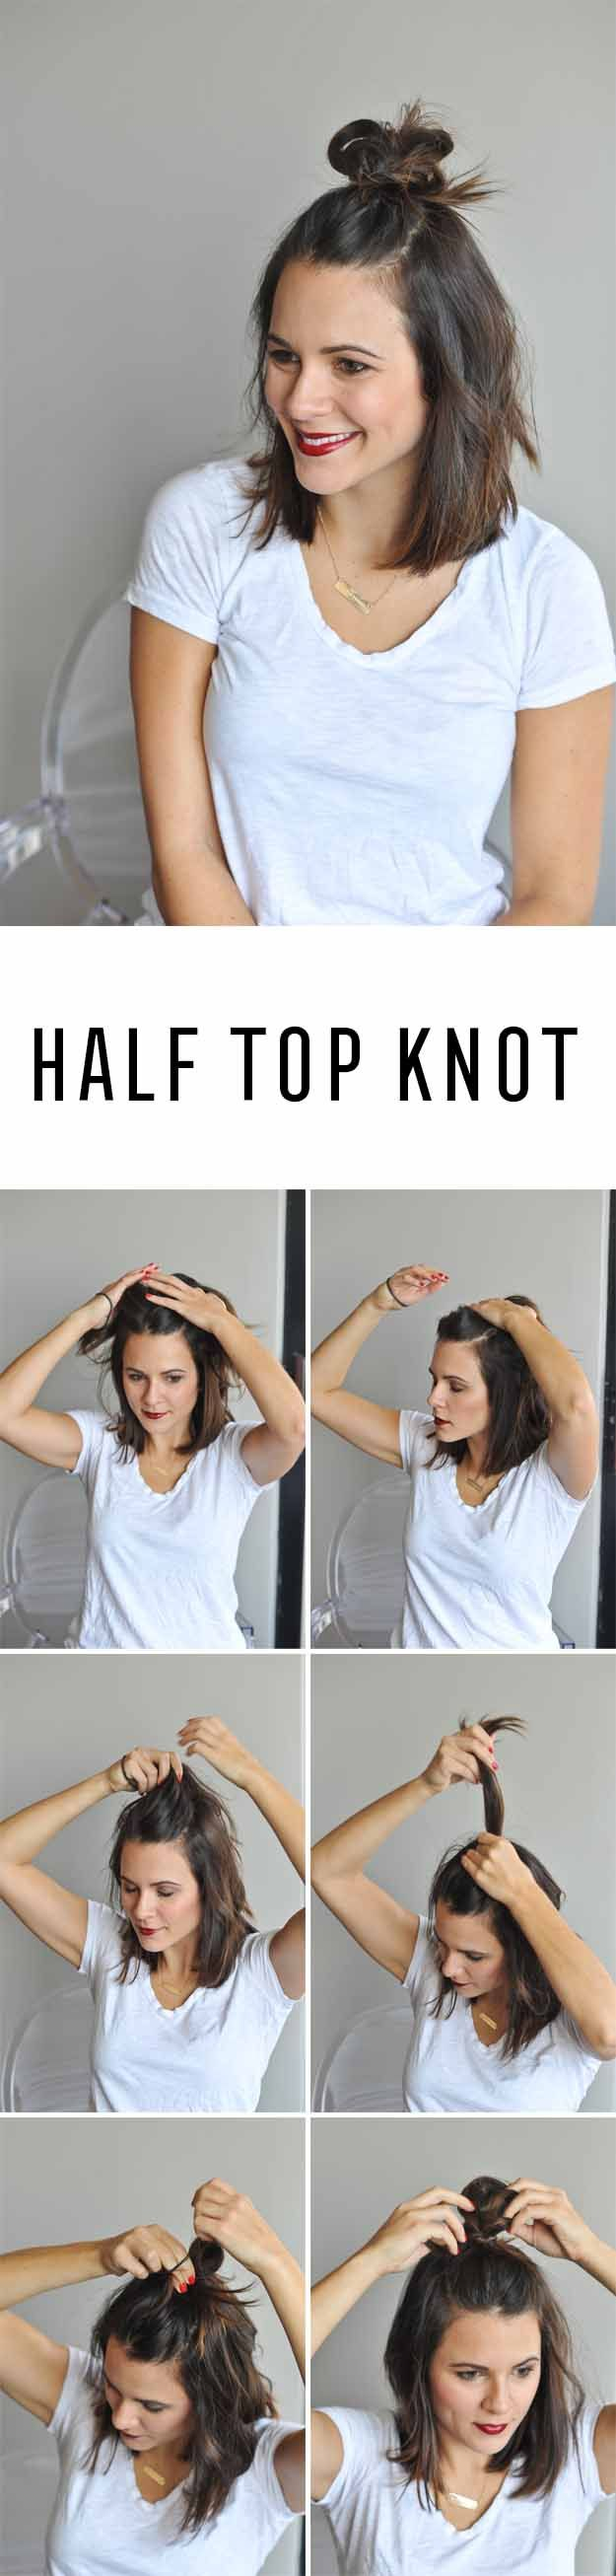 Short Hair Styles You Can Do In 10 Minutes or Less - Half Top Knot - Easy Step By Step Tutorials For Growing Out Your Hair, For Shoulder Length Hair, For The Undo, The Pixie, For Round Faces, The Bob, For Women That Are White And African American. For Over 50, For Over 40, For Wedding, And With Bangs - http://thegoddess.com/quick-short-hair-styles